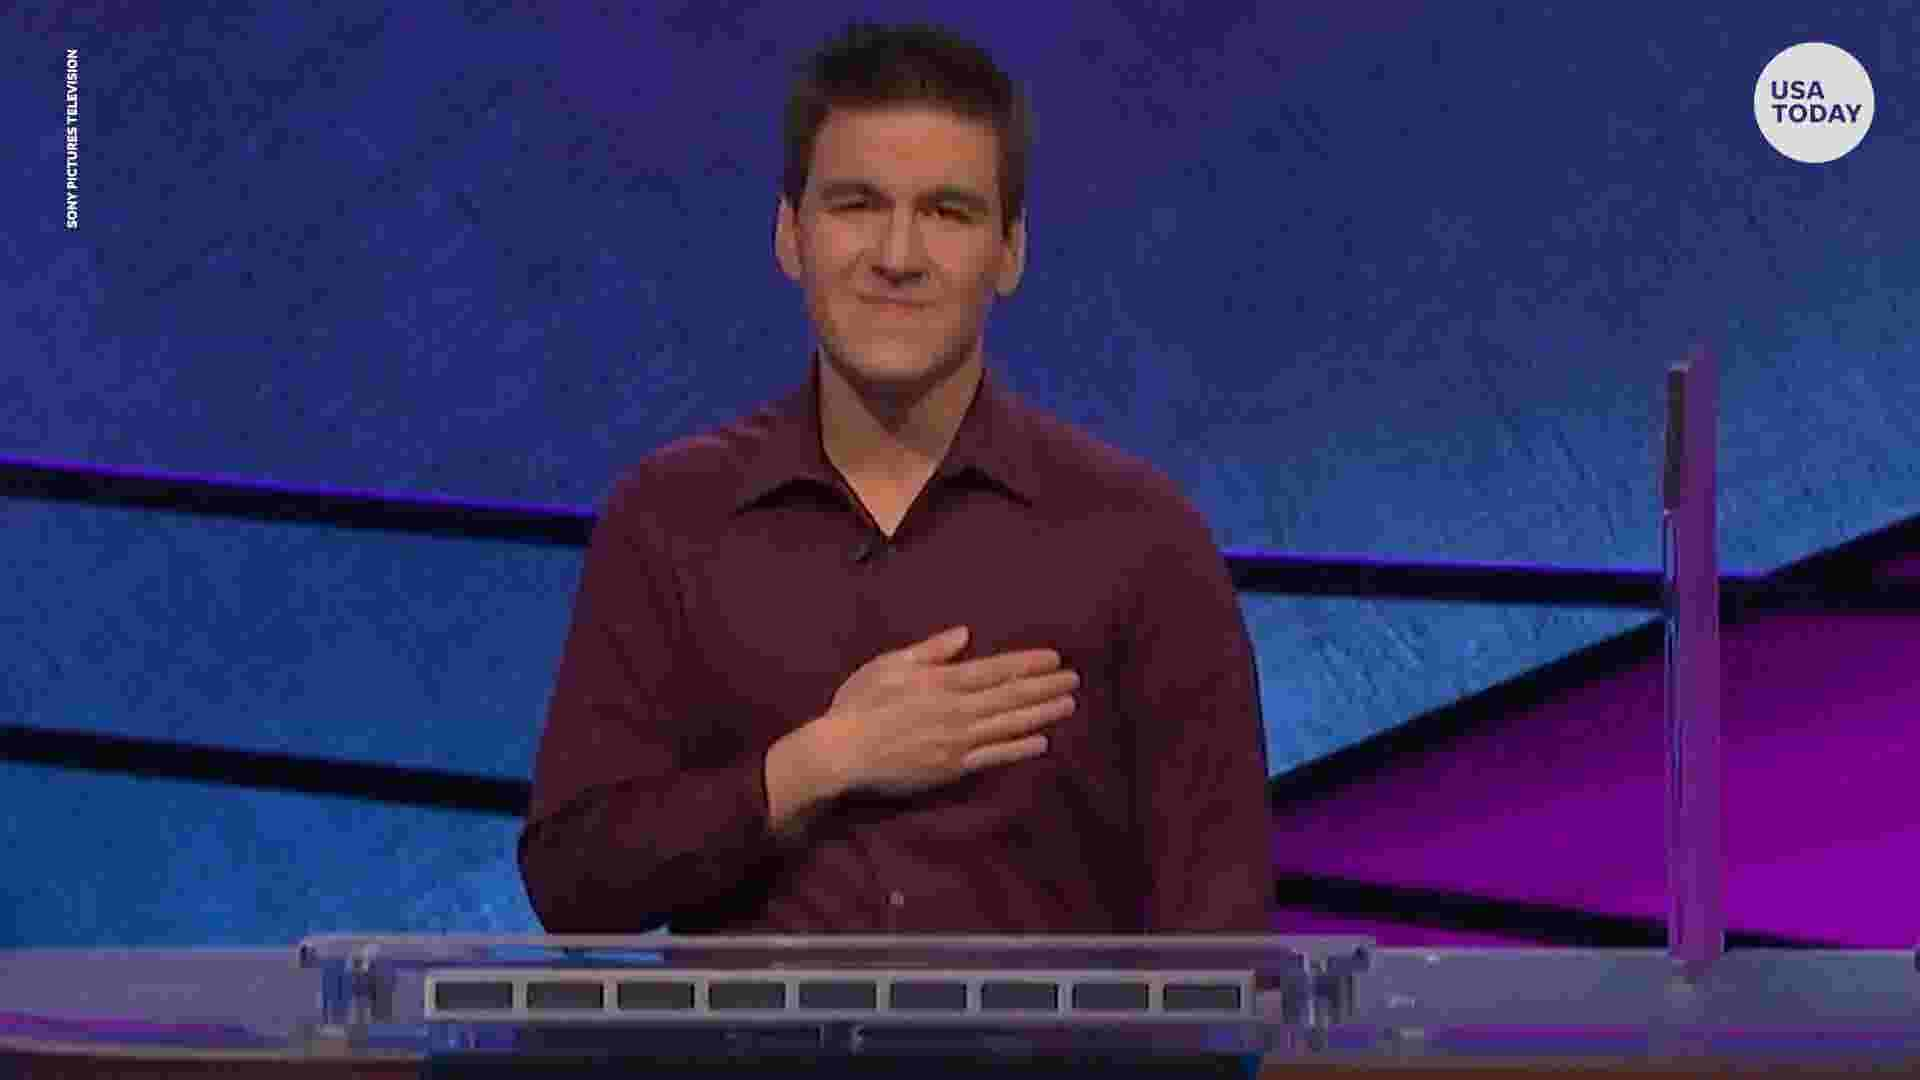 'Jeopardy!' juggernaut James Holzhauer moves closer to $2 million winnings with 25th win